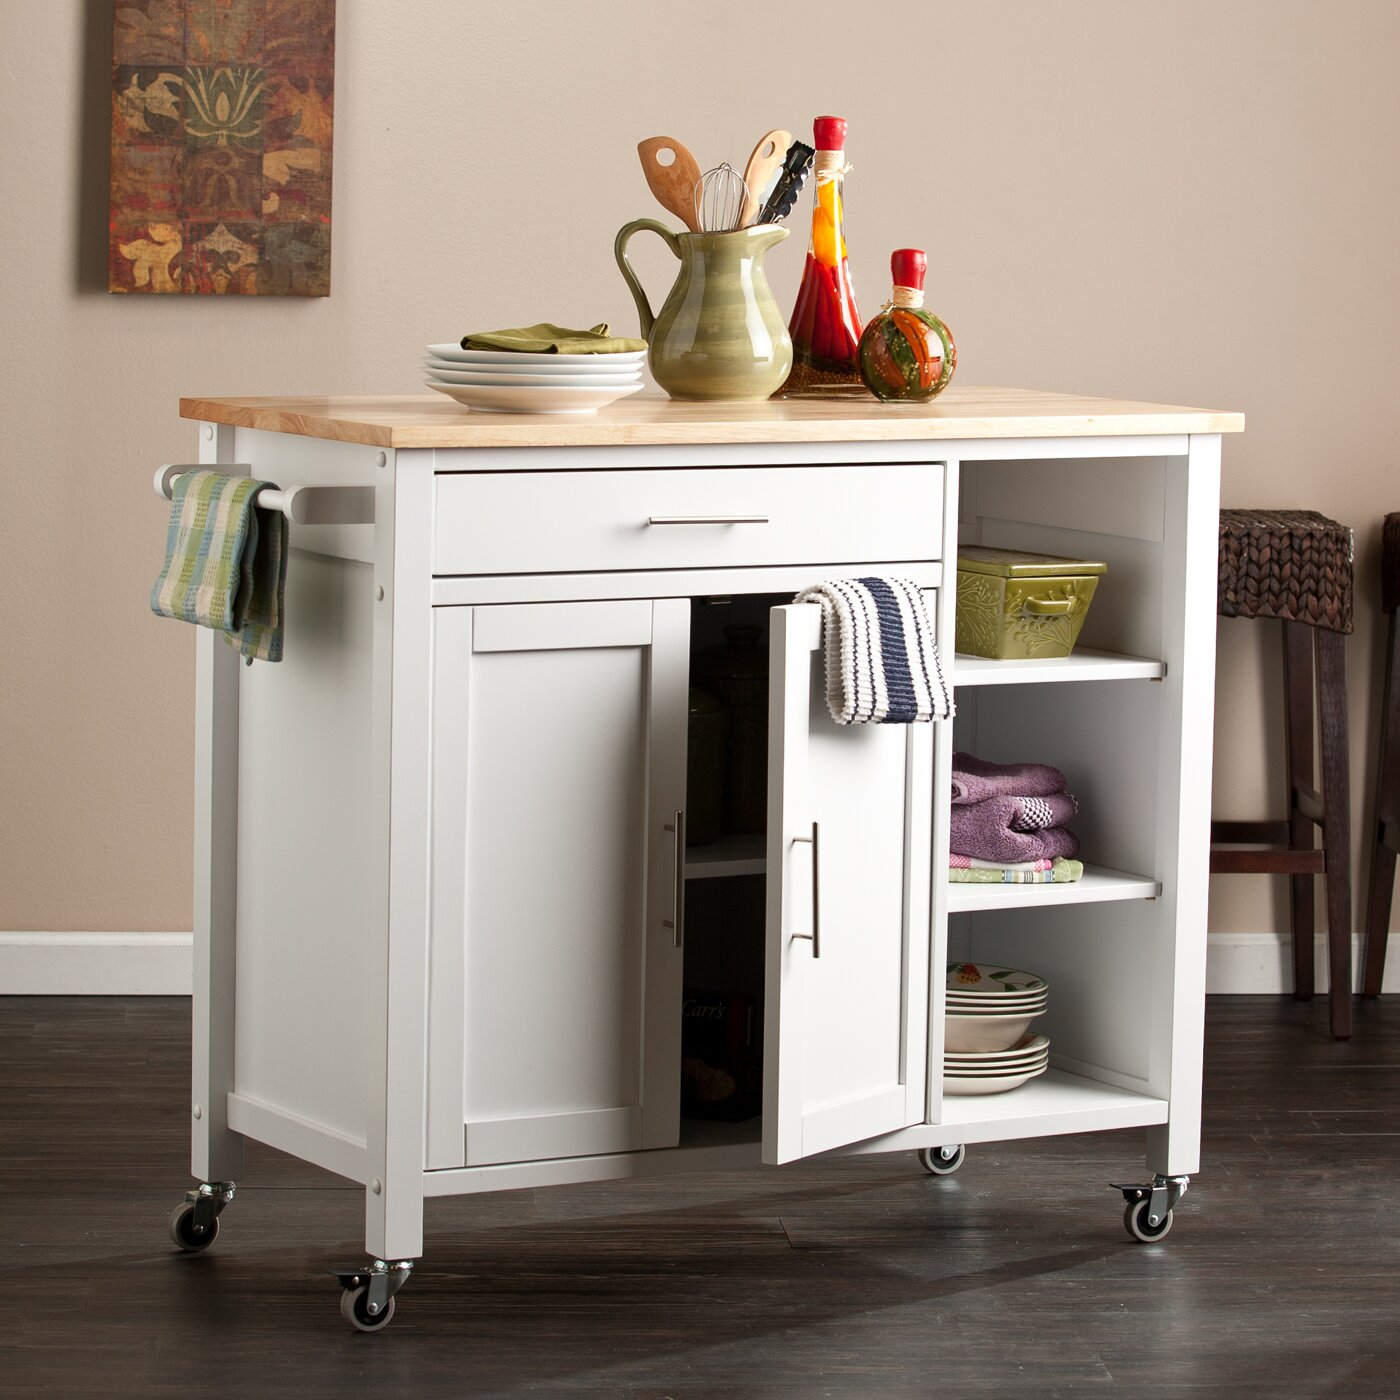 Kitchen Trolley Butcher Block : Alcott Hill Landau Kitchen Cart with Butcher Block Top & Reviews Wayfair